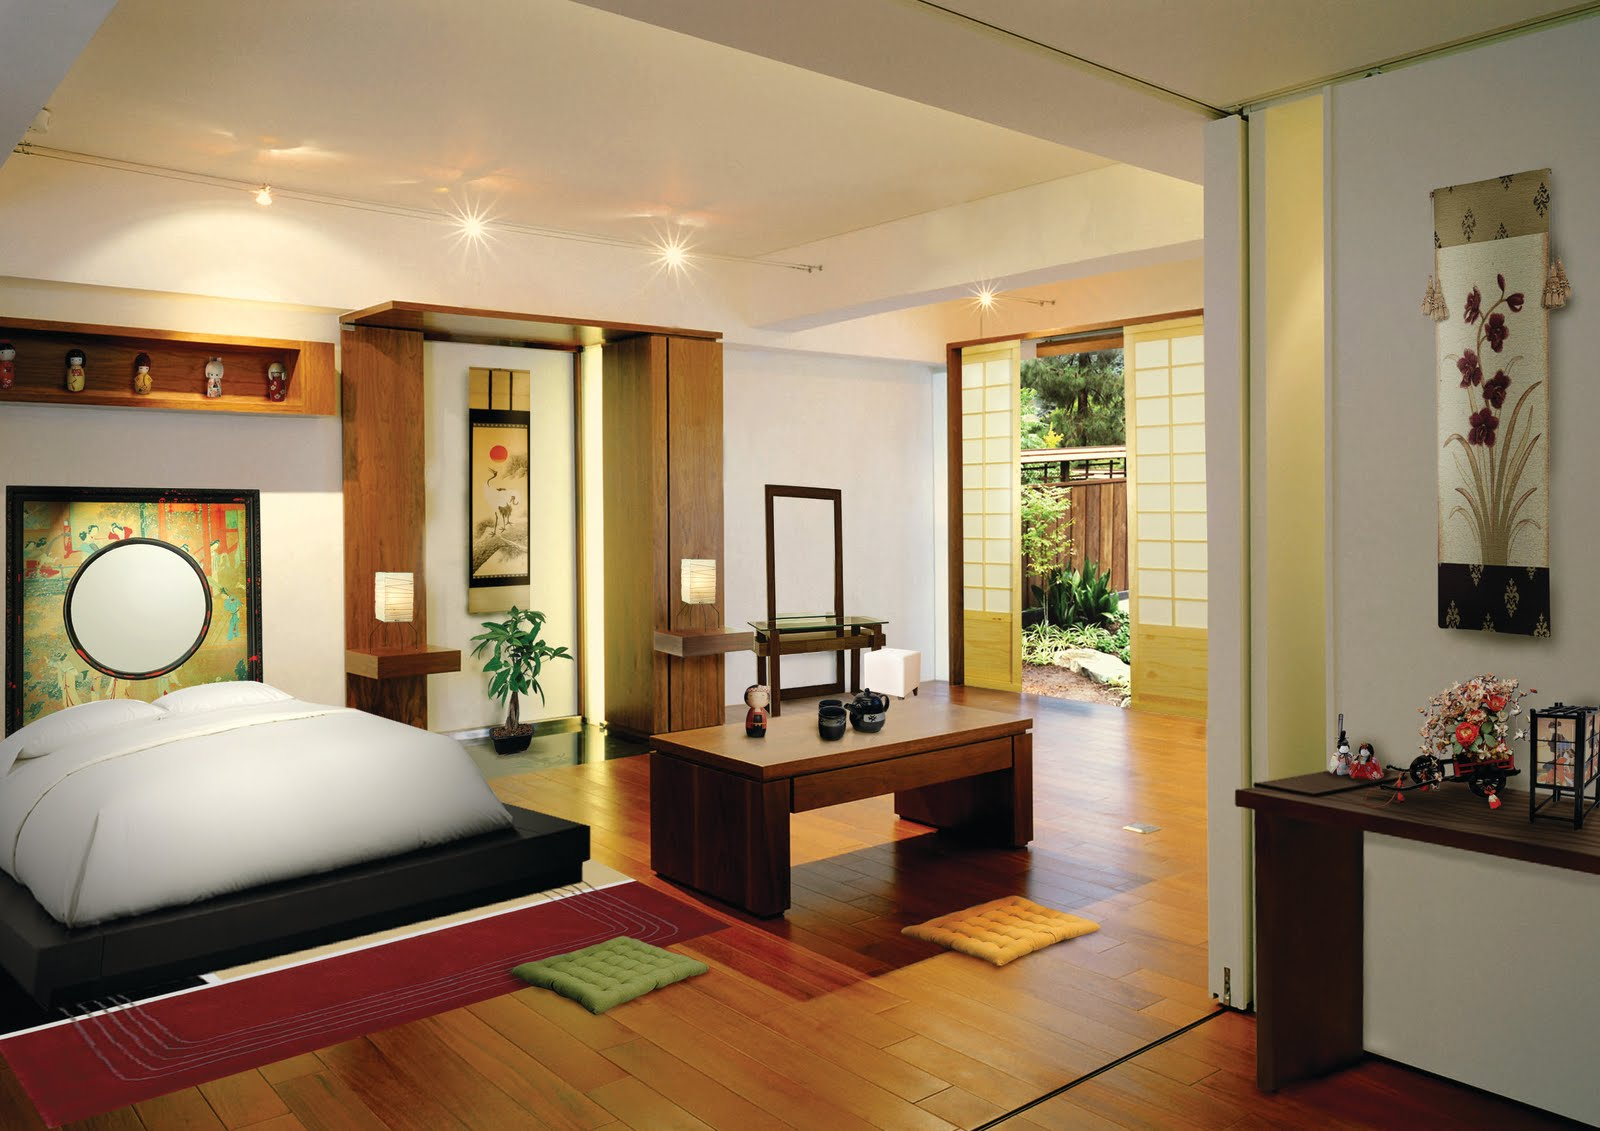 Japanese Bedrooms Style Melokumi Japanese Style Bedroom Design